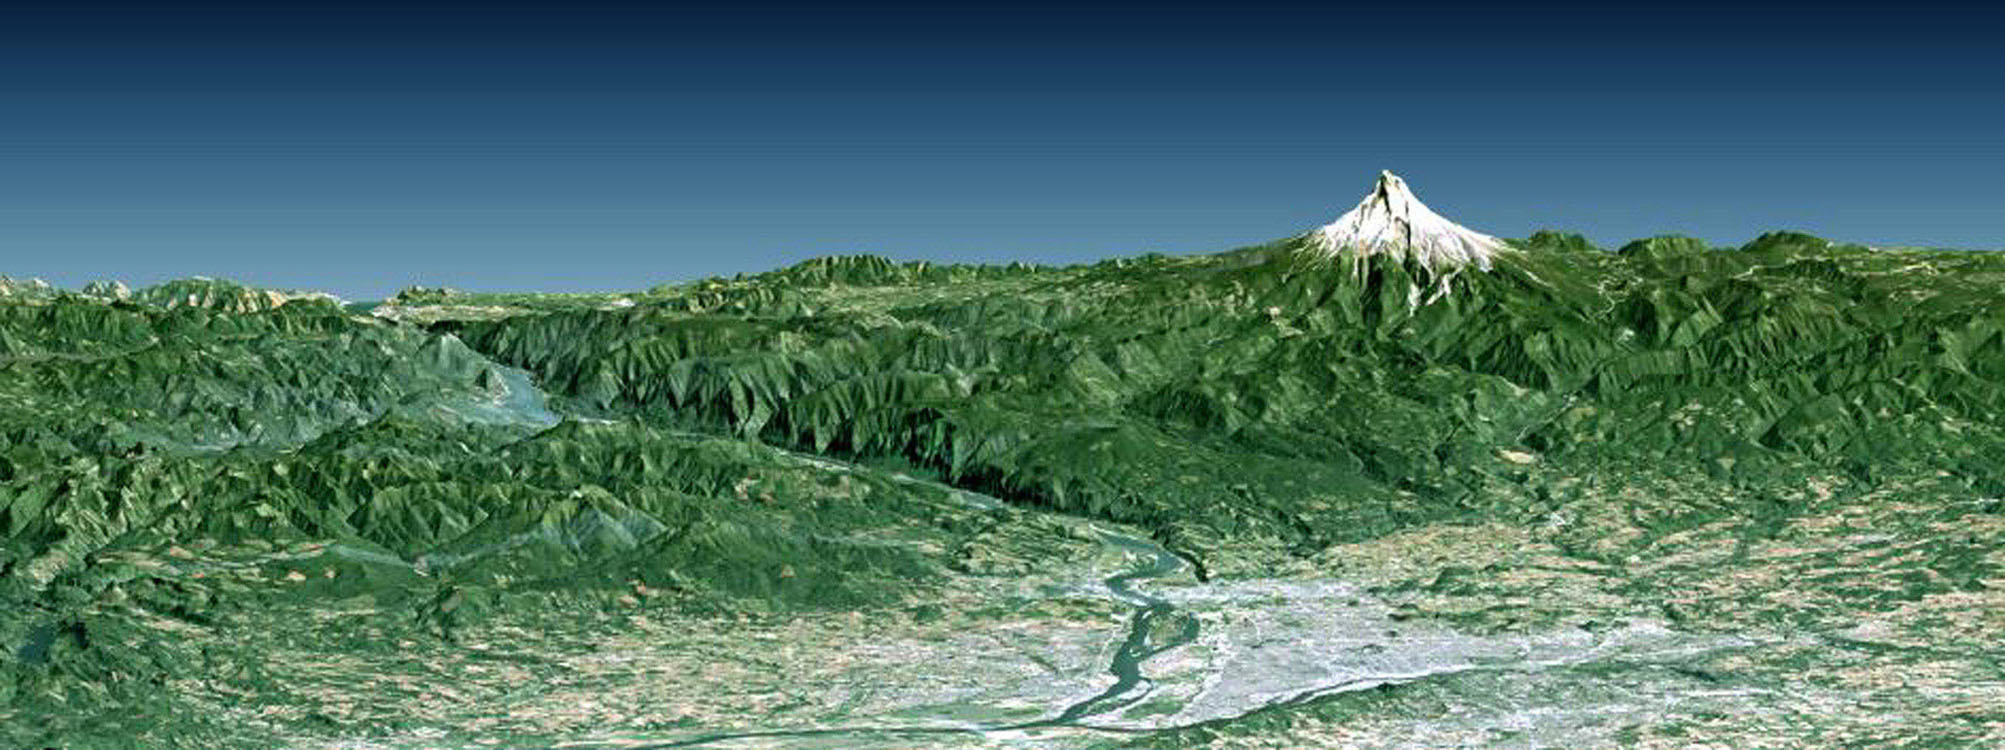 Portland, the largest city in Oregon, is located on the Columbia River at the northern end of the Willamette Valley. Mount Hood highlights the Cascade Mountains backdrop to the east in this image from NASA's Shuttle Radar Topography Mission.